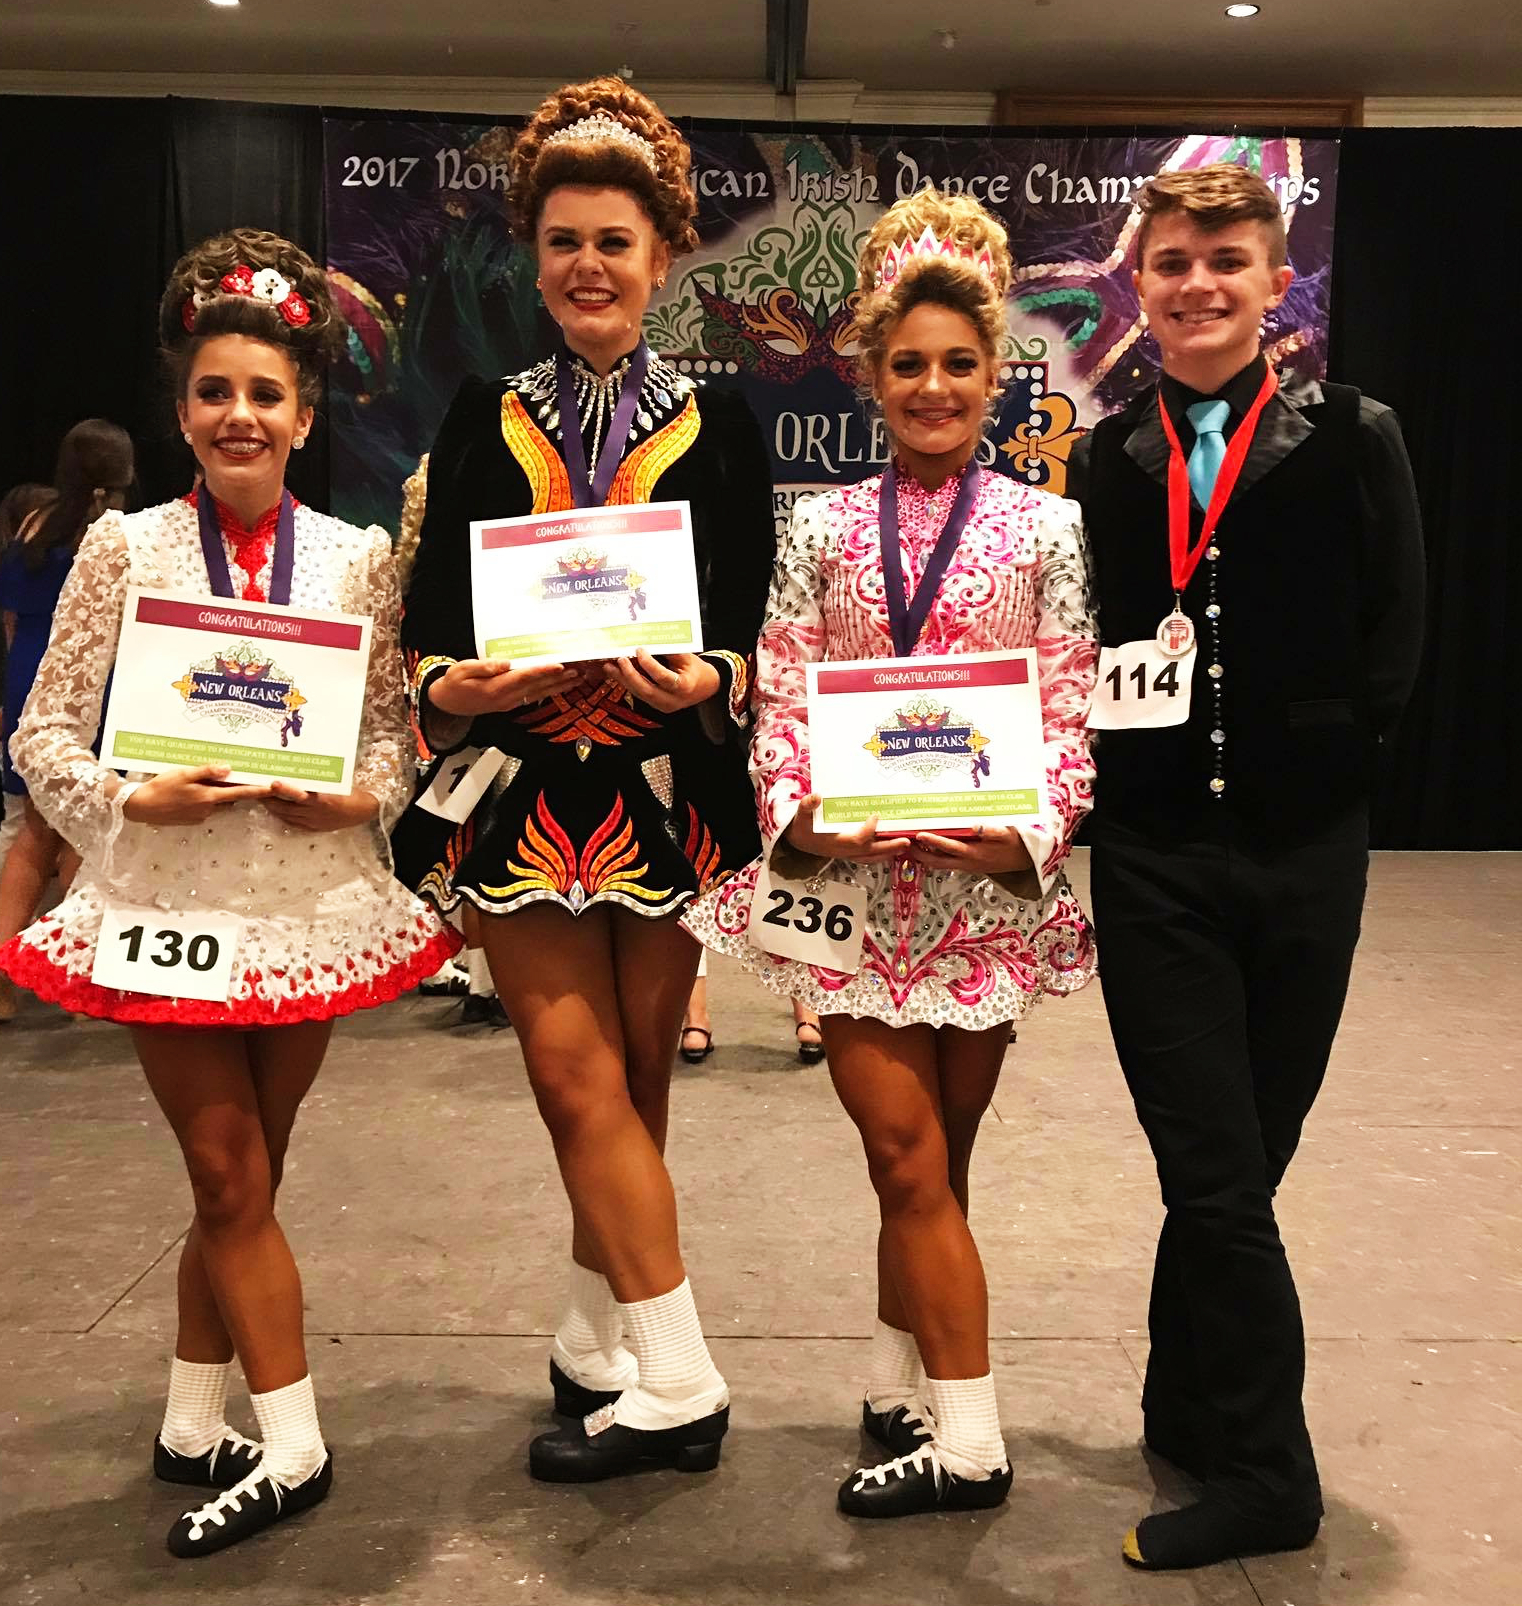 Four competitors in solo costumes.